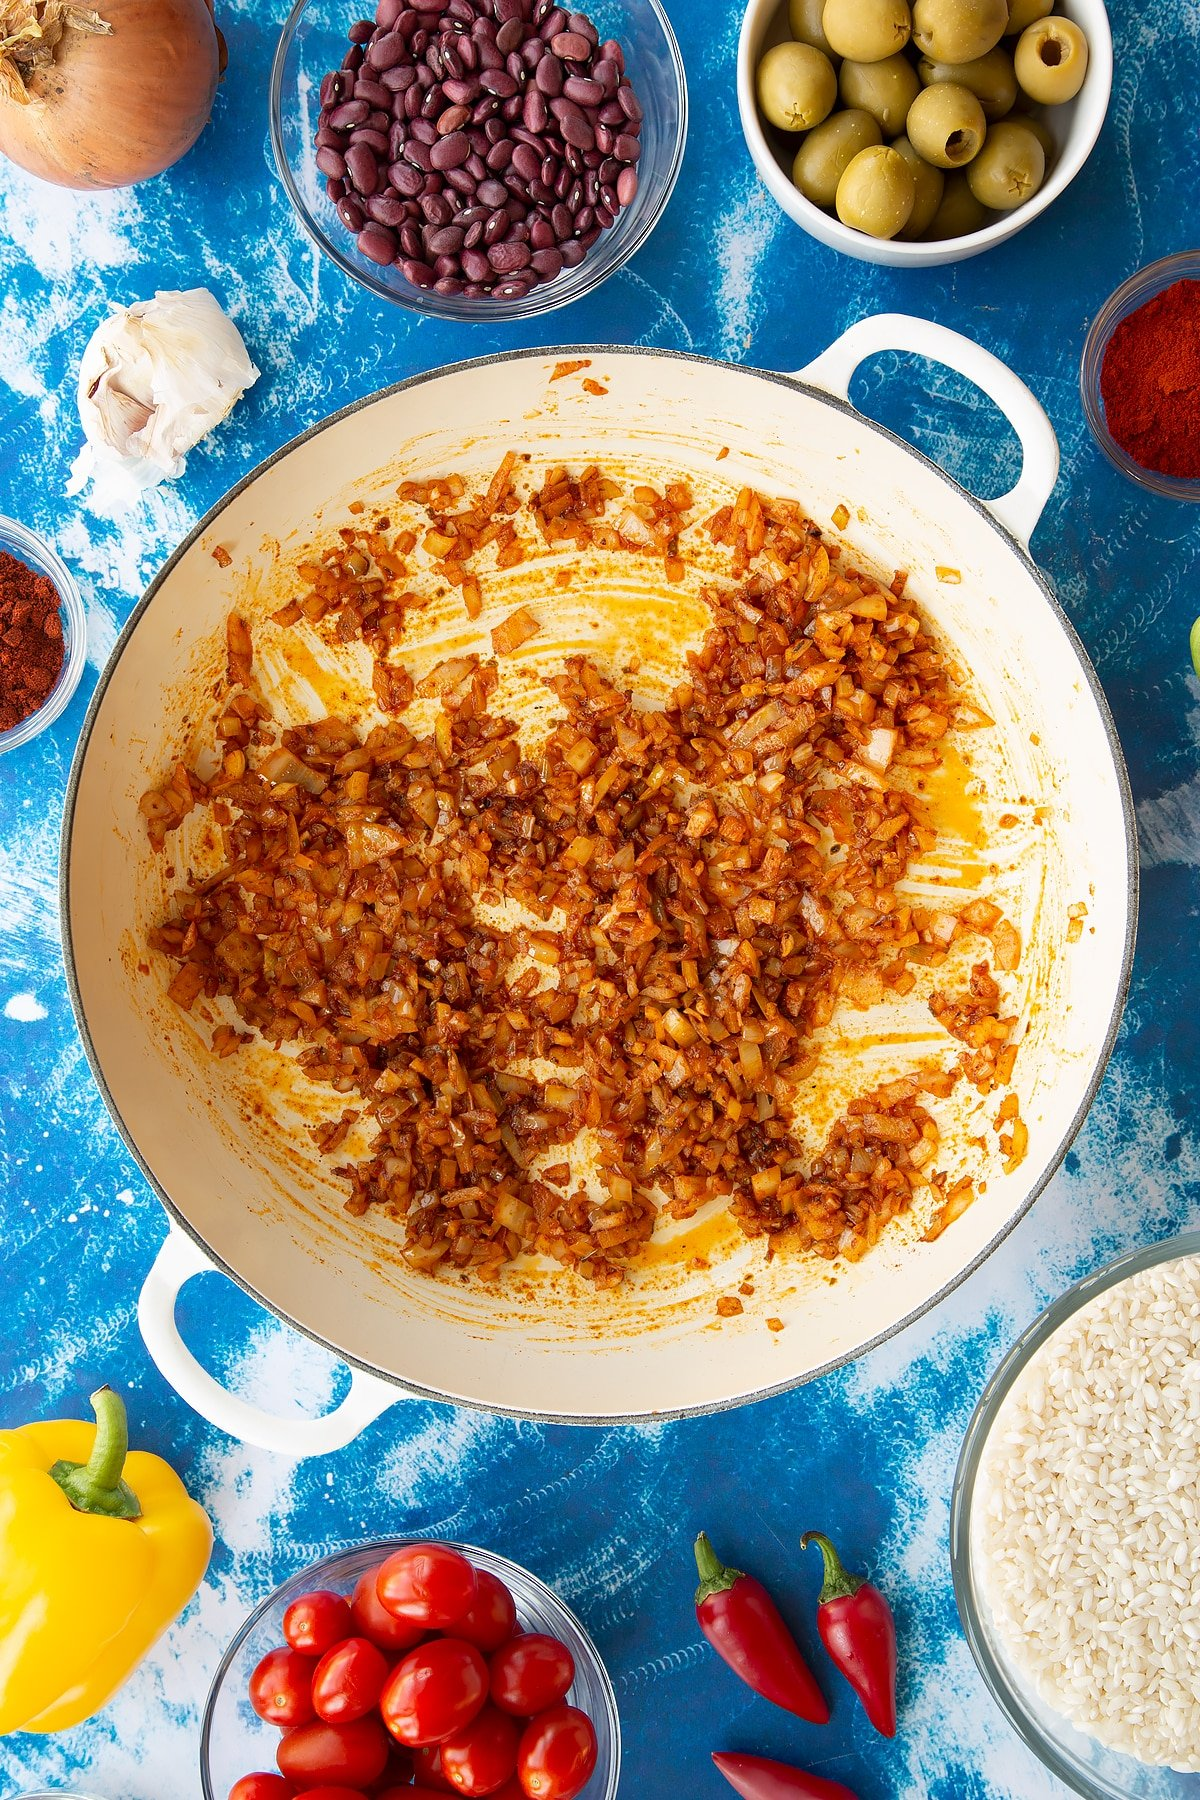 Sweated onions, garlic, cayenne, paprika and oregano in a pan. Ingredients to make easy Spanish rice and beans surround the pan.